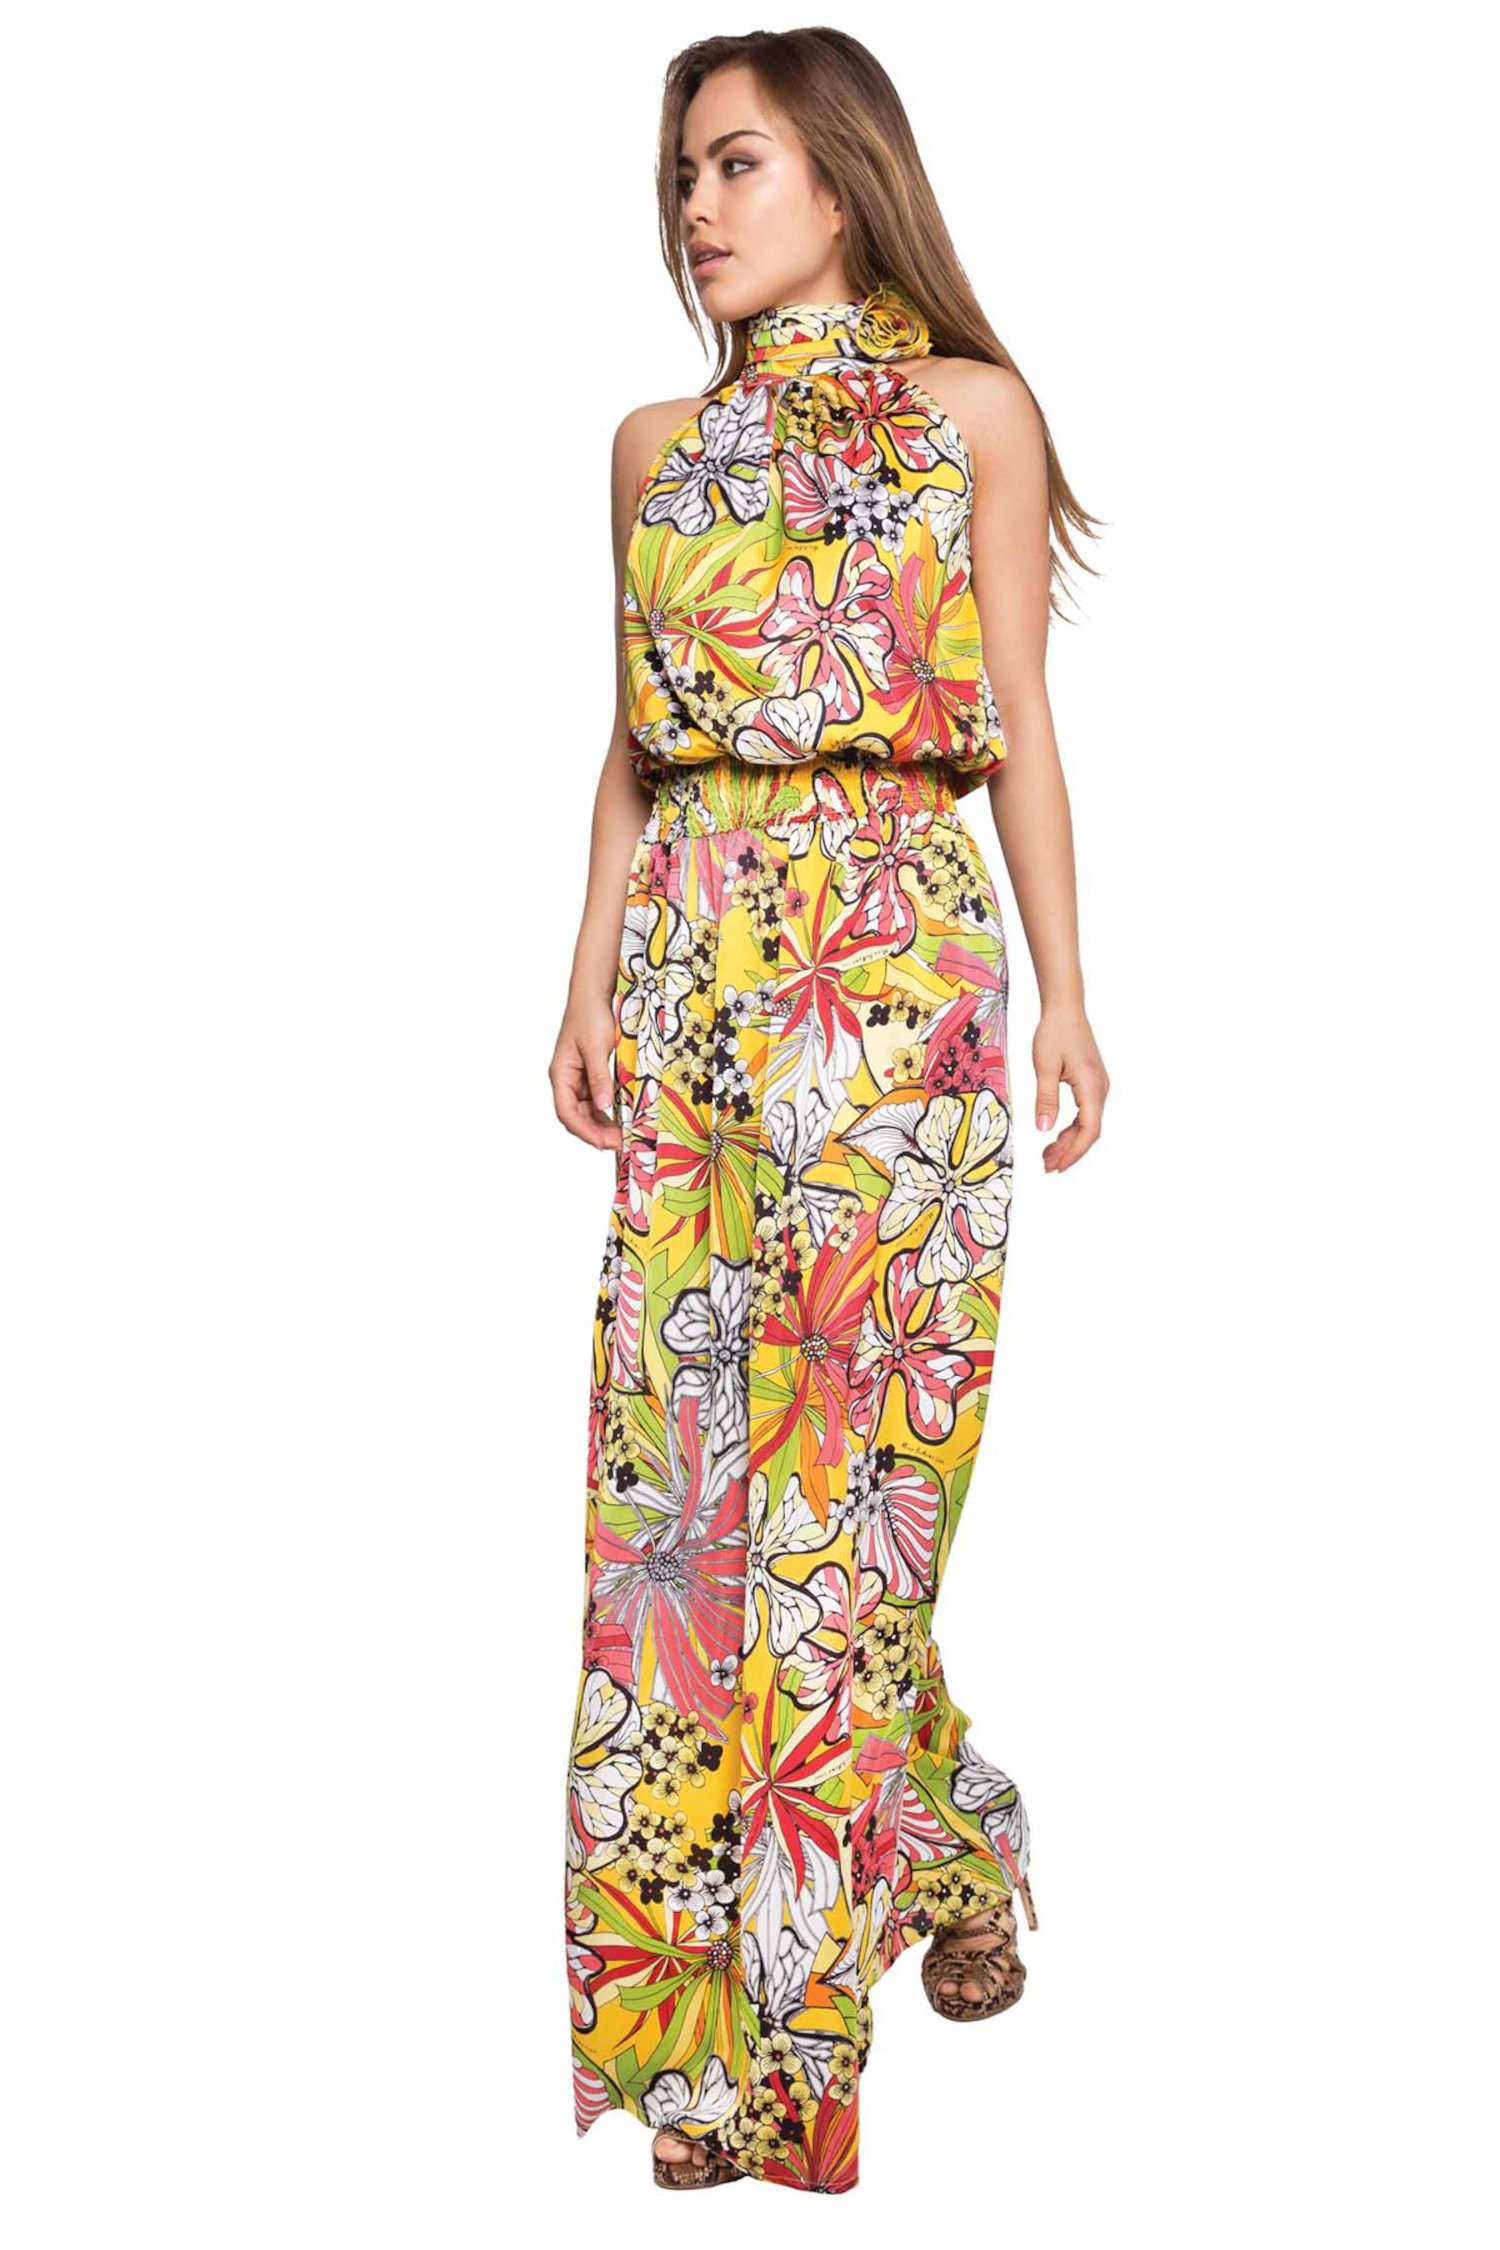 LONG DRESS FLOWER - Fiori Giallo